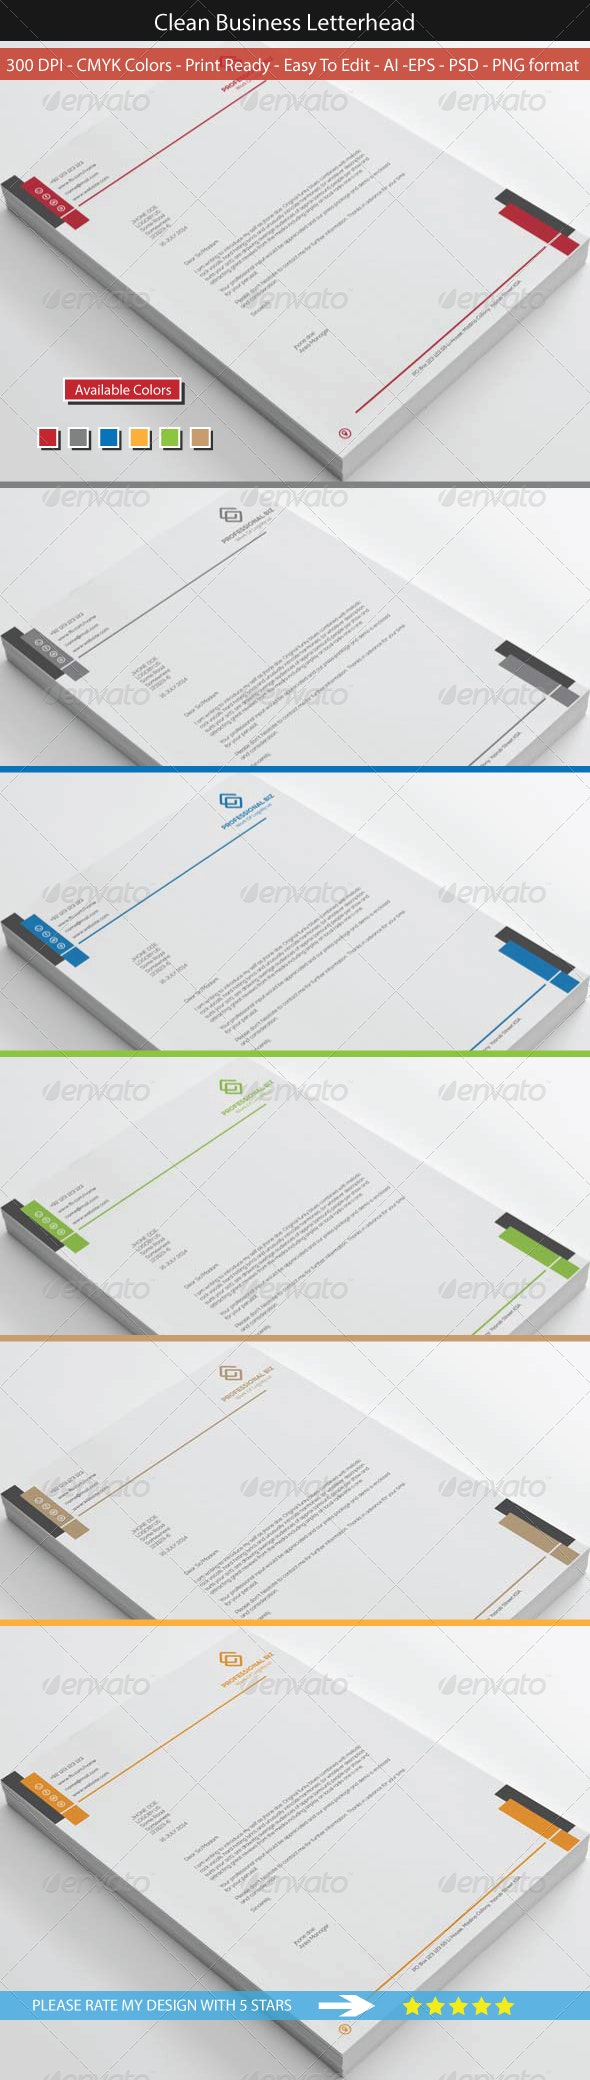 Clean Corporate Business Letterhead - Stationery Print Templates